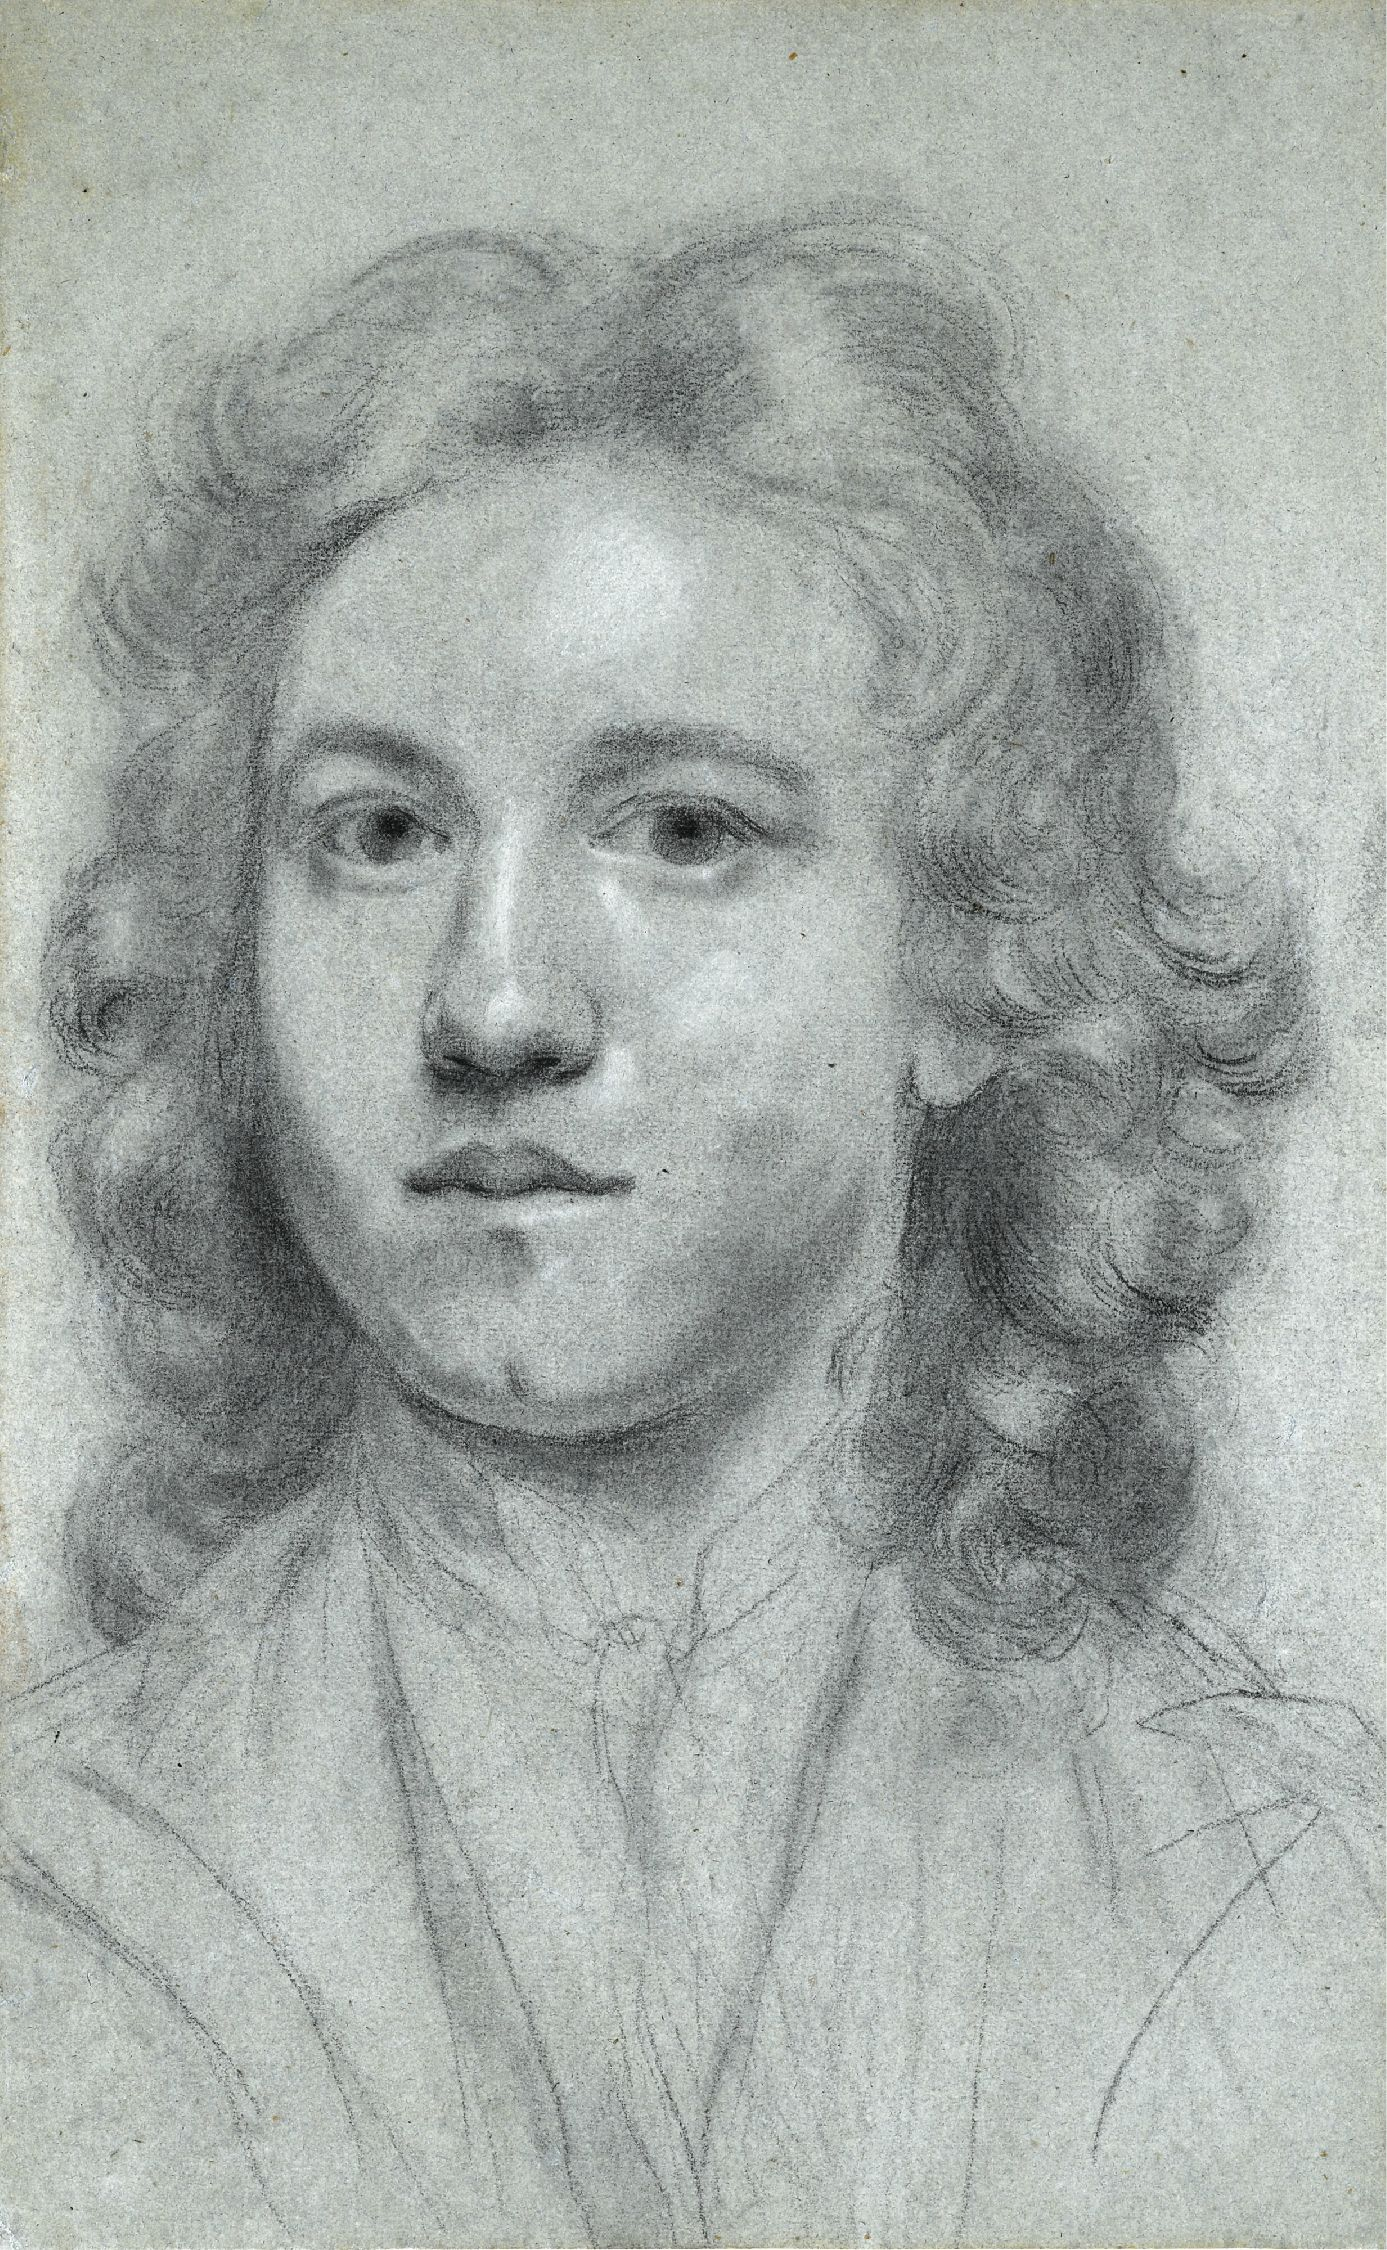 Joshua Reynolds, Self-portrait at the age of seventeen, 1740, black and white chalk and stump, on buff laid paper, 41,5 x 26 cm, Private collection